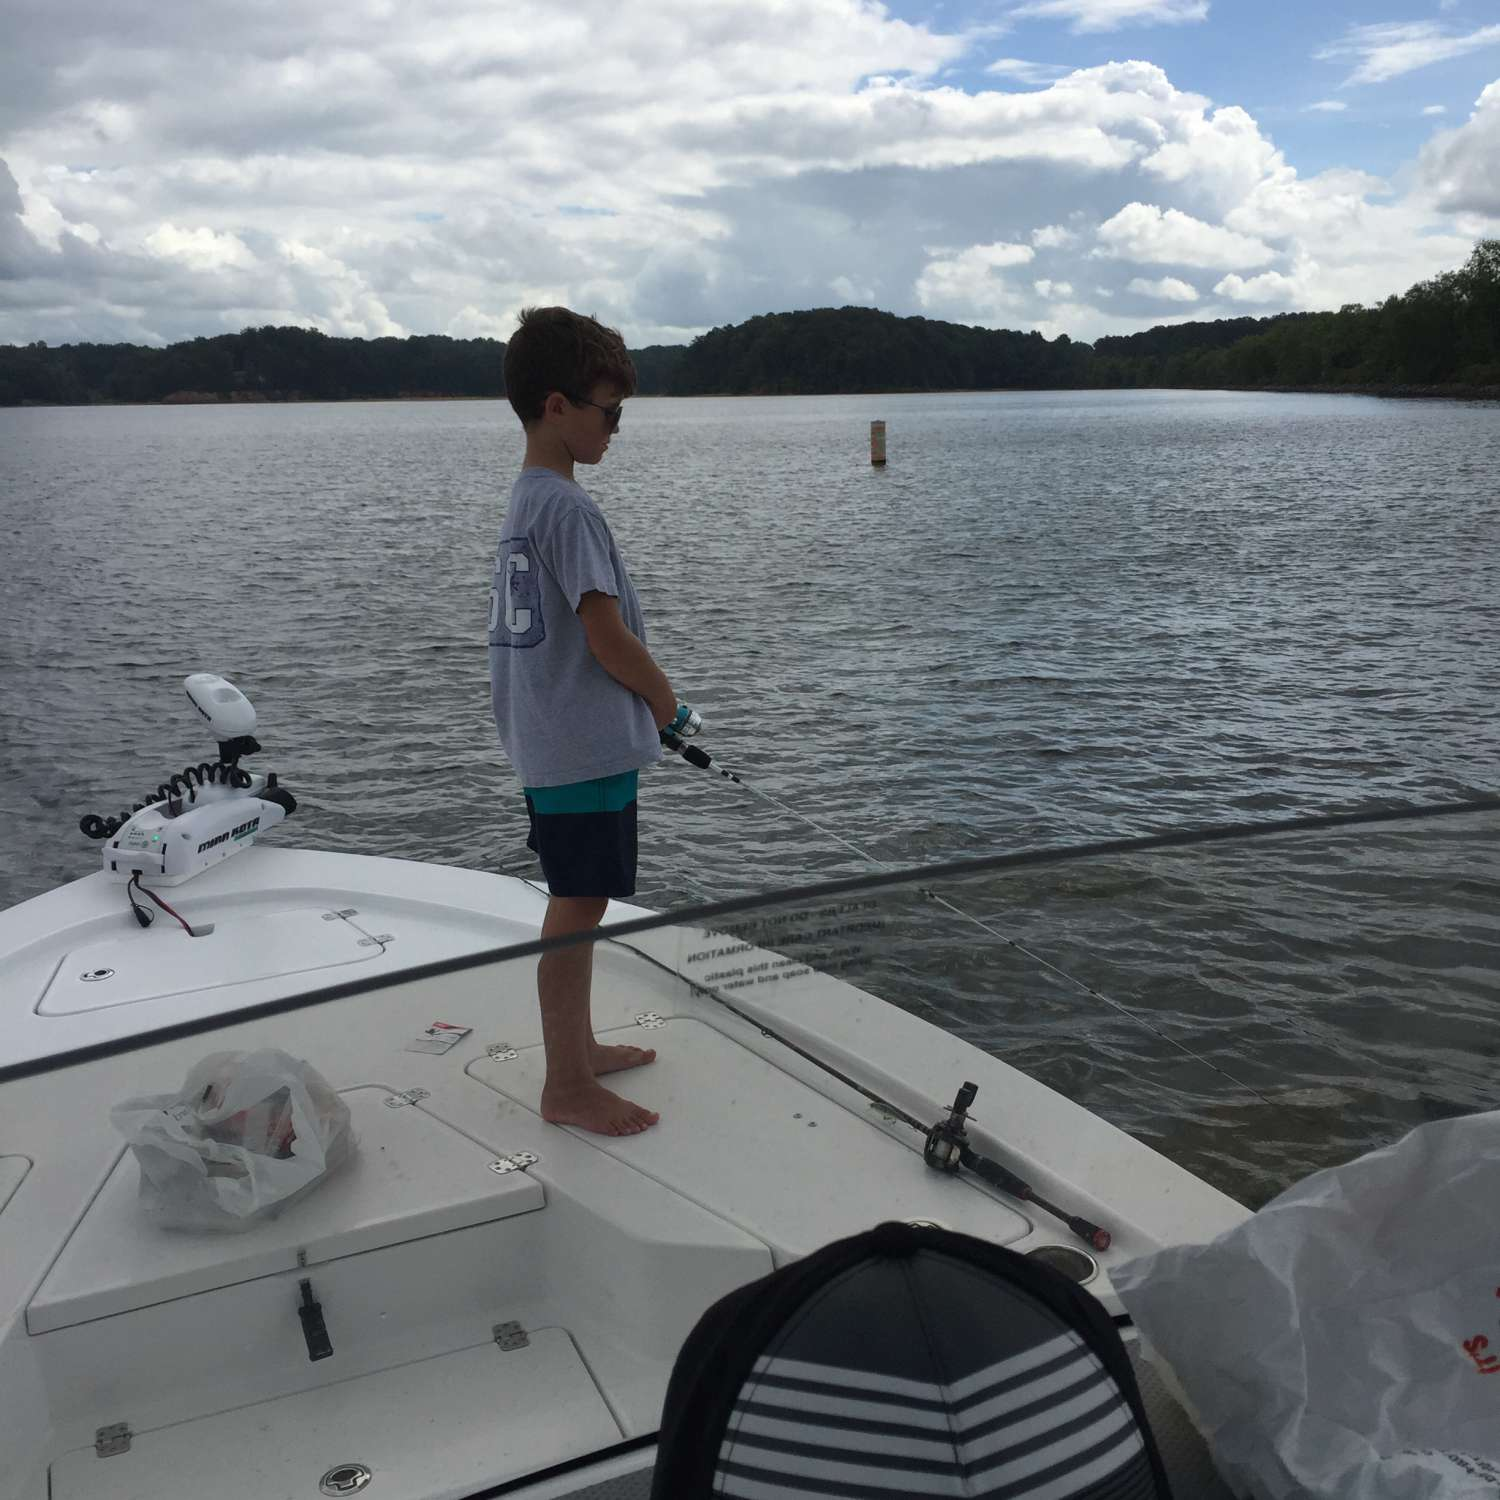 Title: Captain 234 - On board their Sportsman Tournament 234 Bay Boat - Location: Easley, South Carolina. Participating in the Photo Contest #SportsmanAugust2016